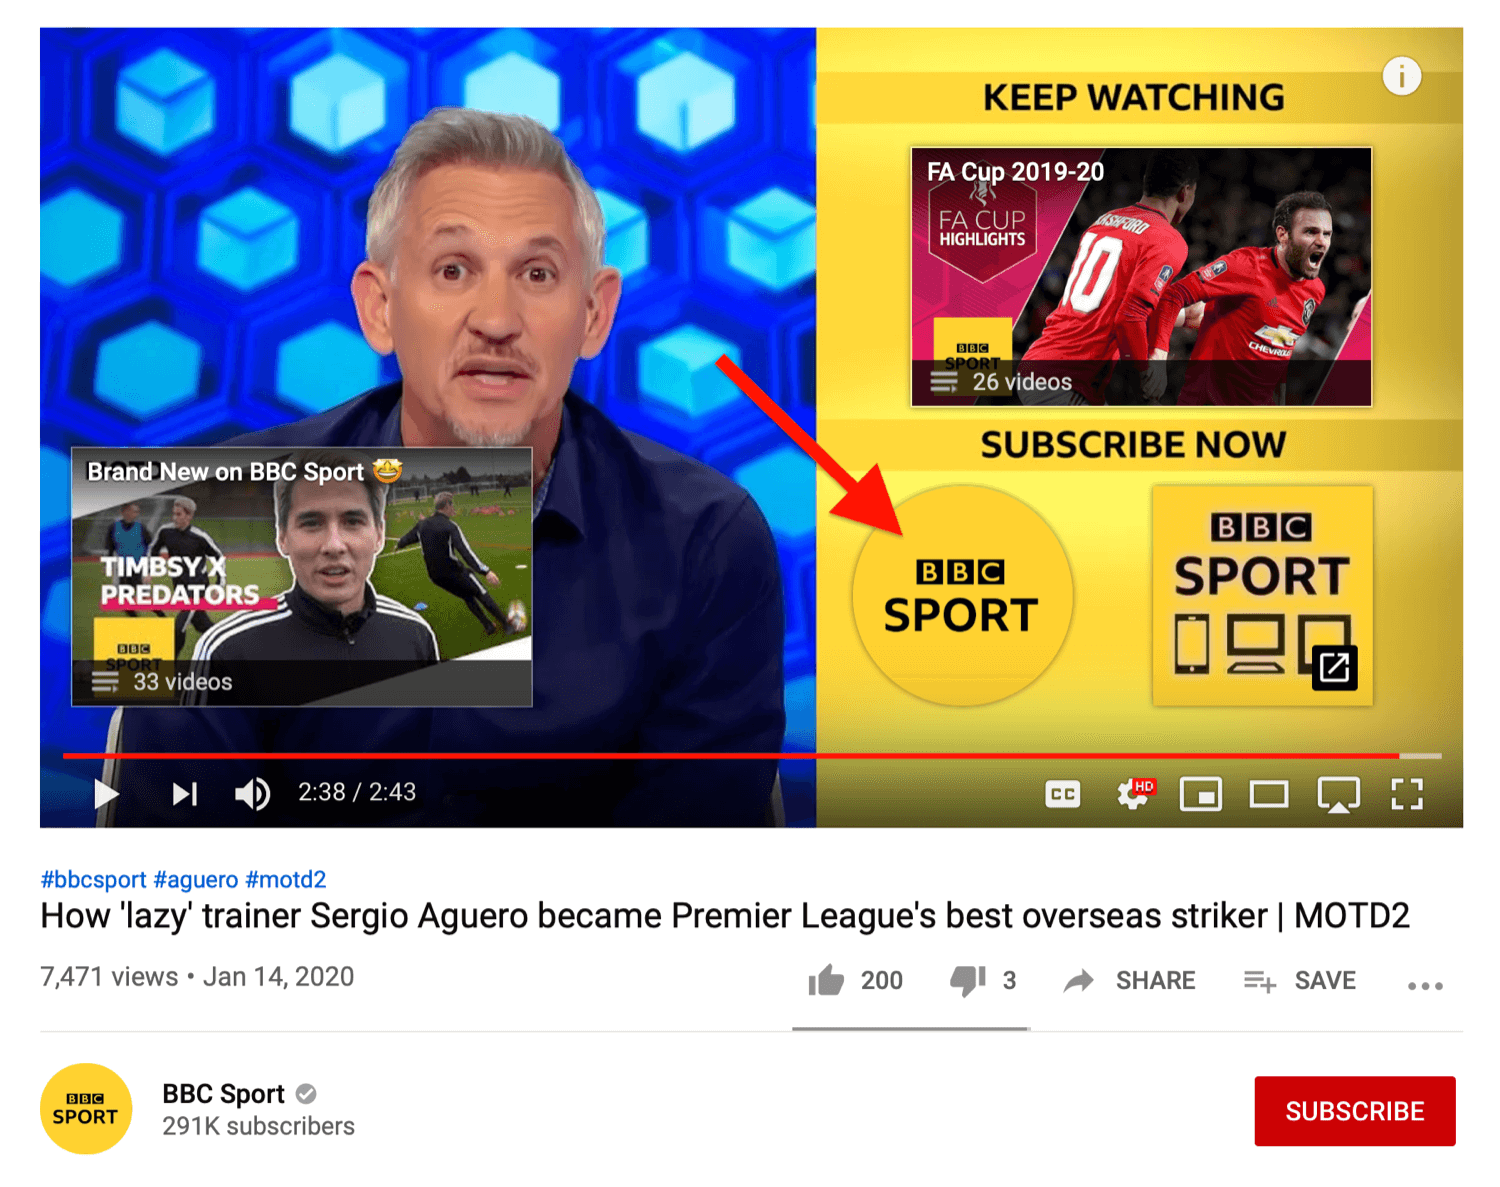 example of YouTube video end screen showing subscribe button